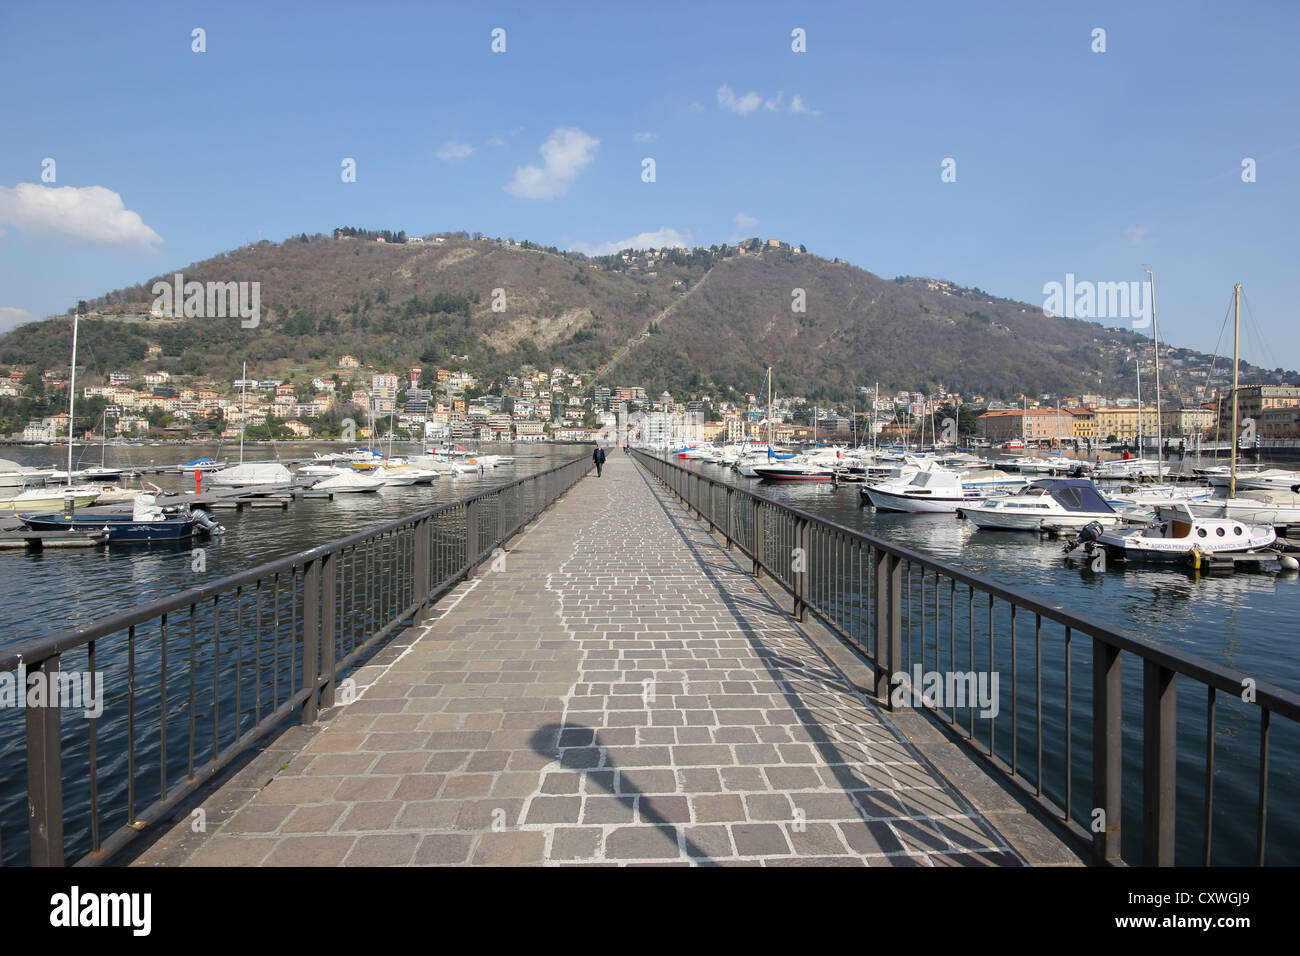 A picture of the walk of Lake Como, Italy besides the bay, boats, dock, photoarkive - Stock Image